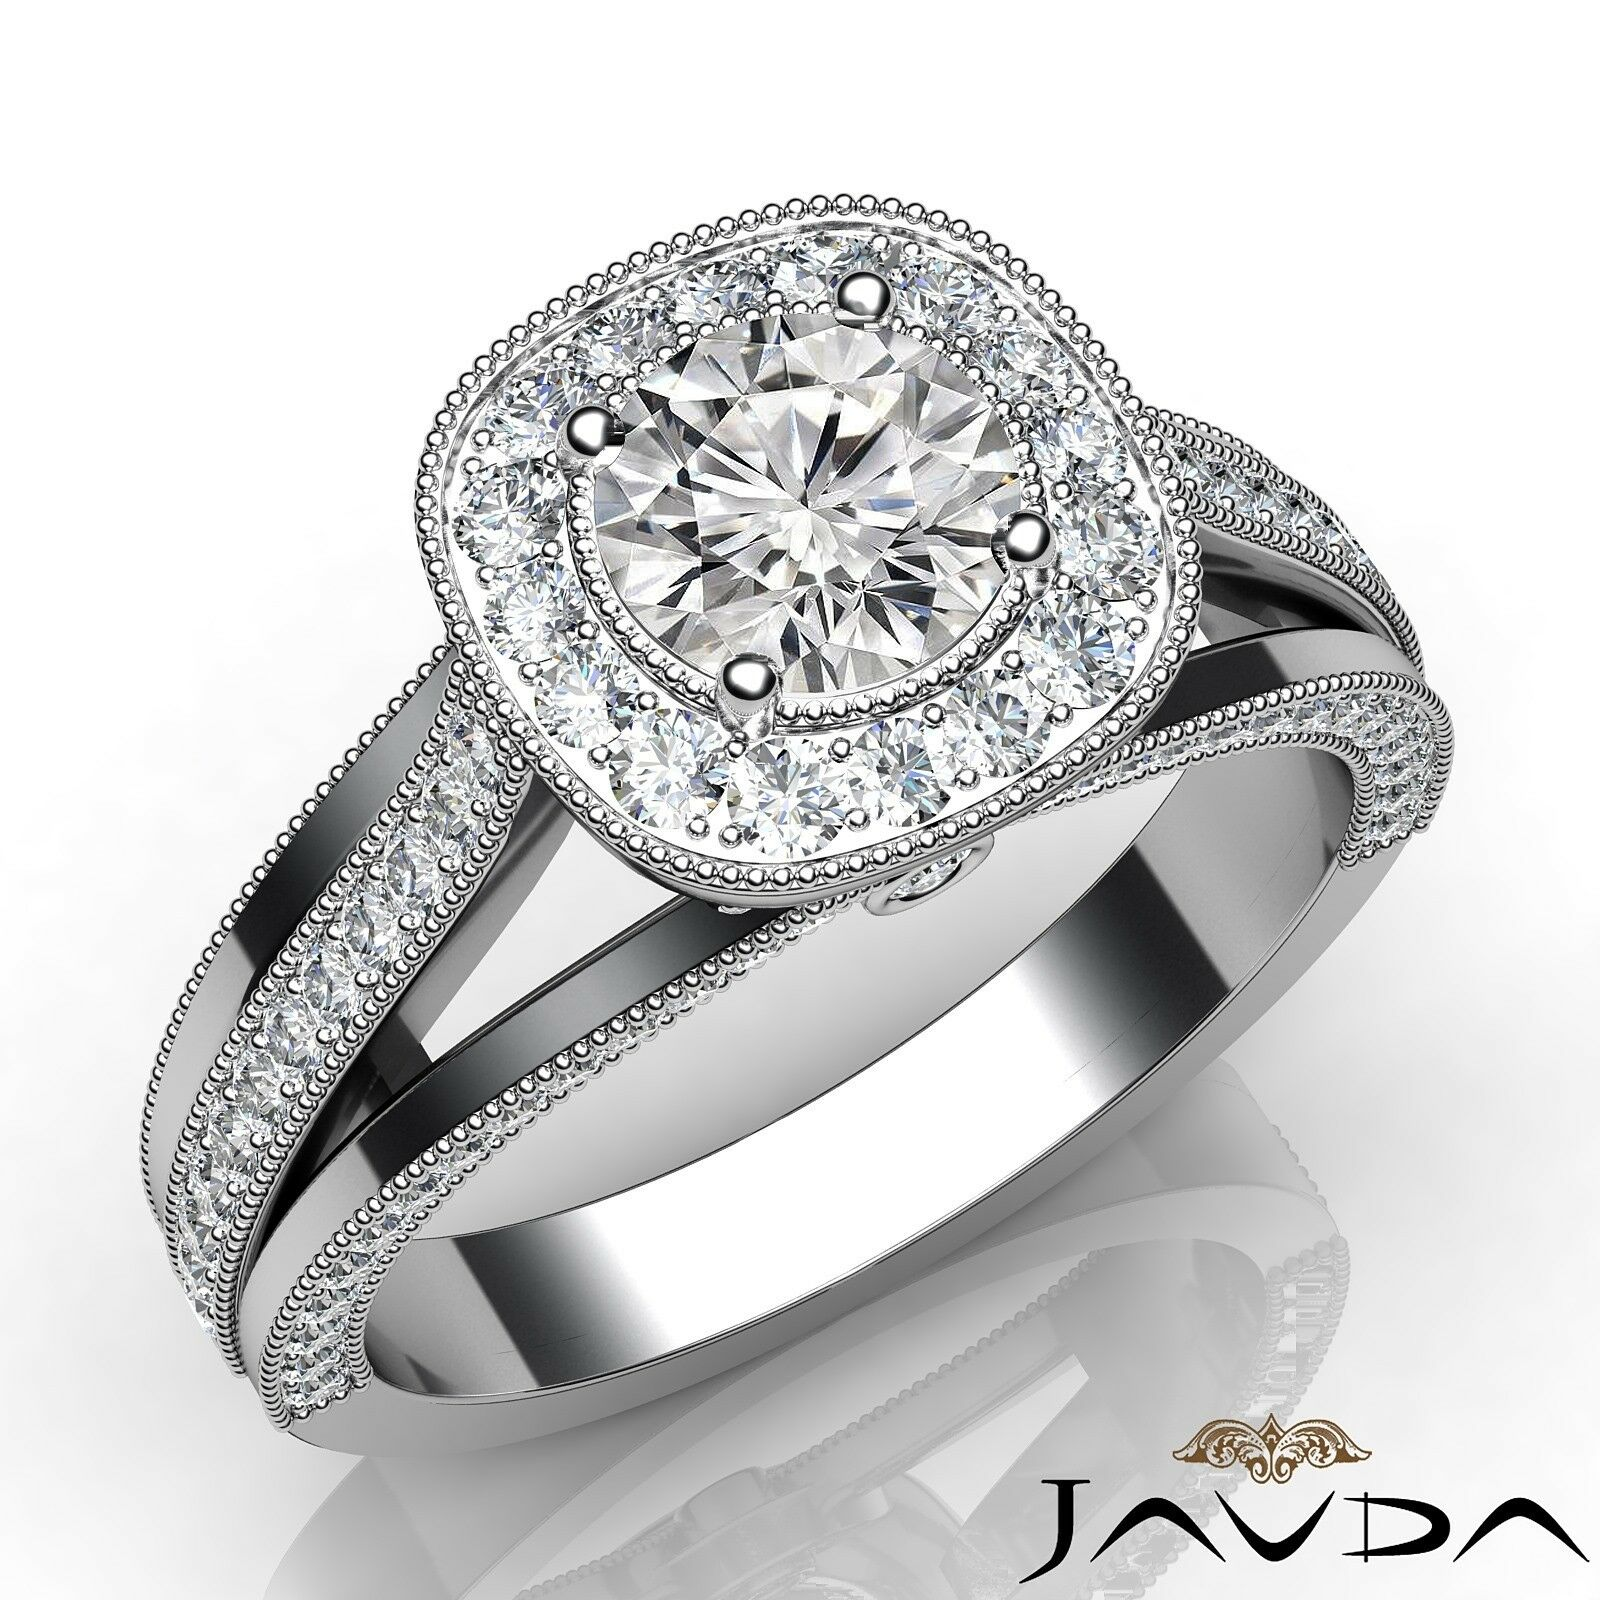 1.4ctw Milgrain Edge Round Diamond Engagement Ring GIA G-VS2 White Gold Women